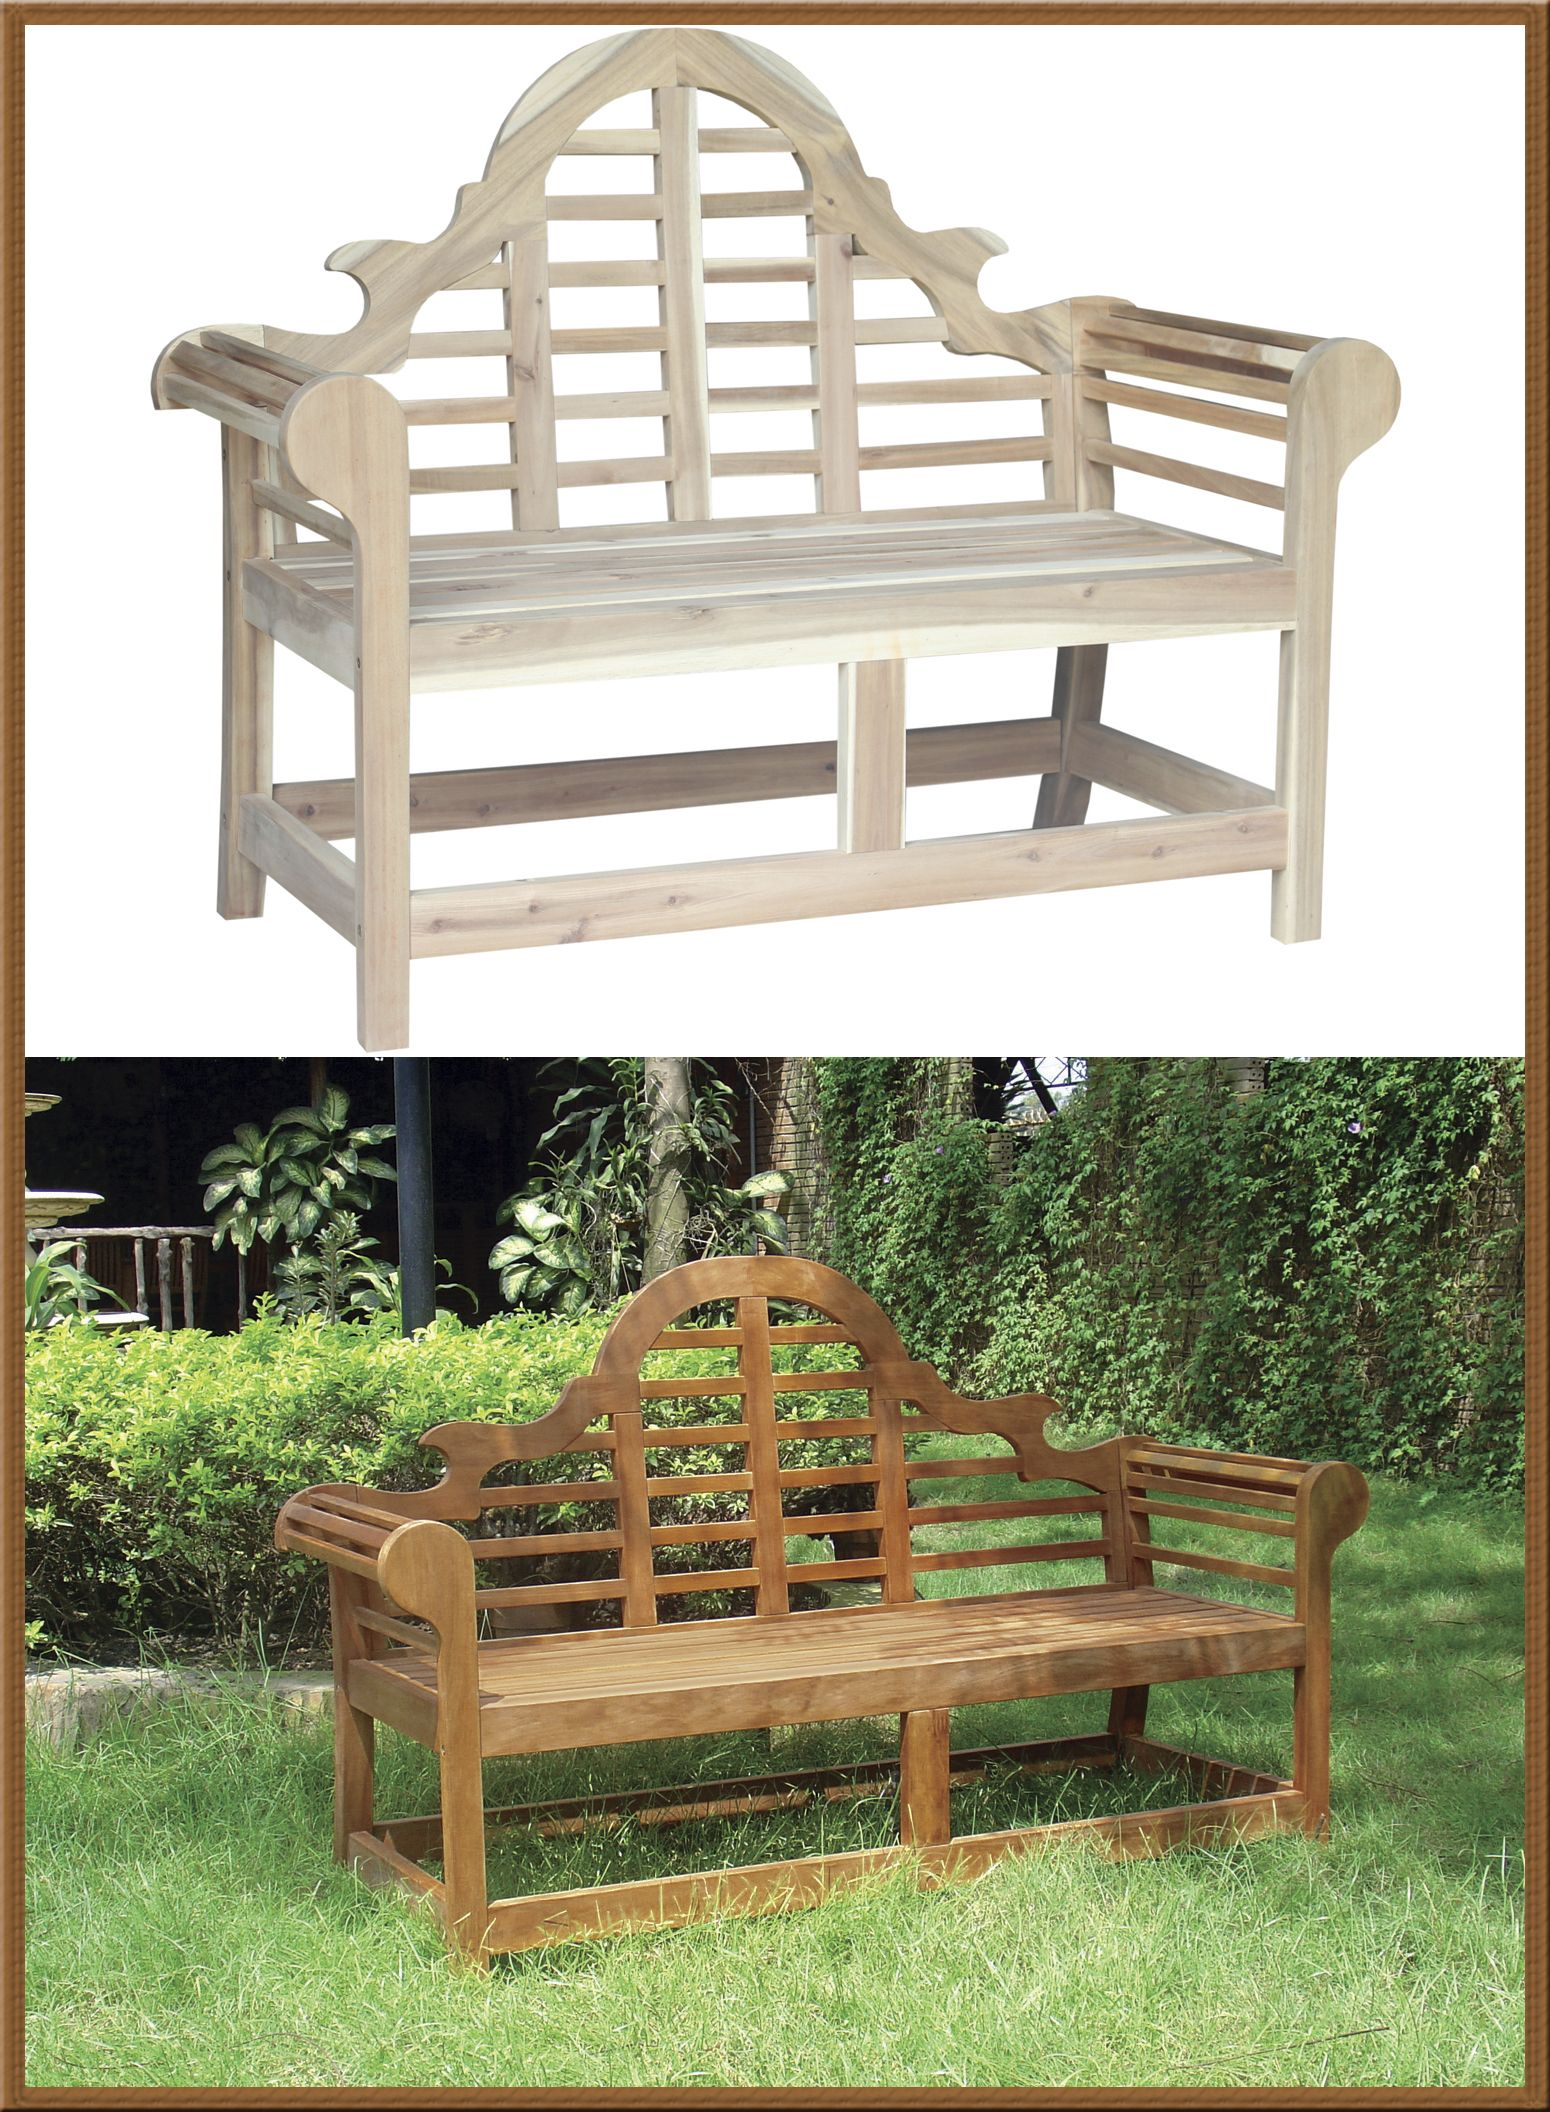 Ordinaire Finish Your Outdoor Furniture In Style, Check Out Our Full Line Of Furniture  Finishing Products To Customize And Protect Your Outdoor Furniture.